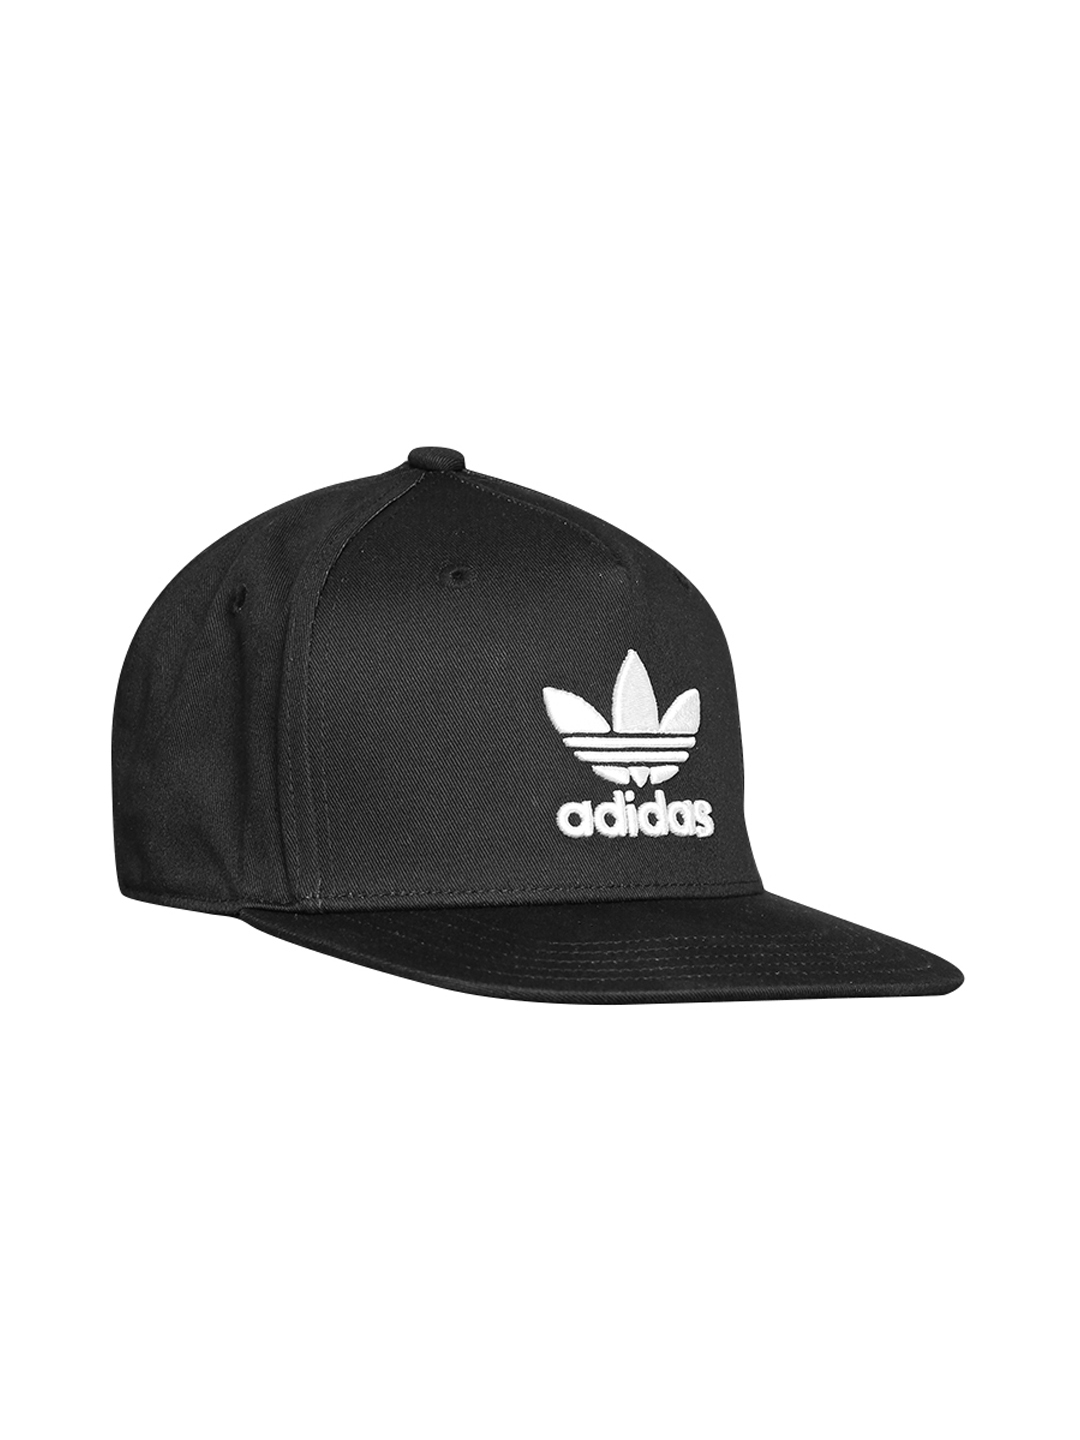 dbd29ae7d33e8d Buy ADIDAS Originals Unisex Black AC TRE Flat Cap - Caps for Unisex ...